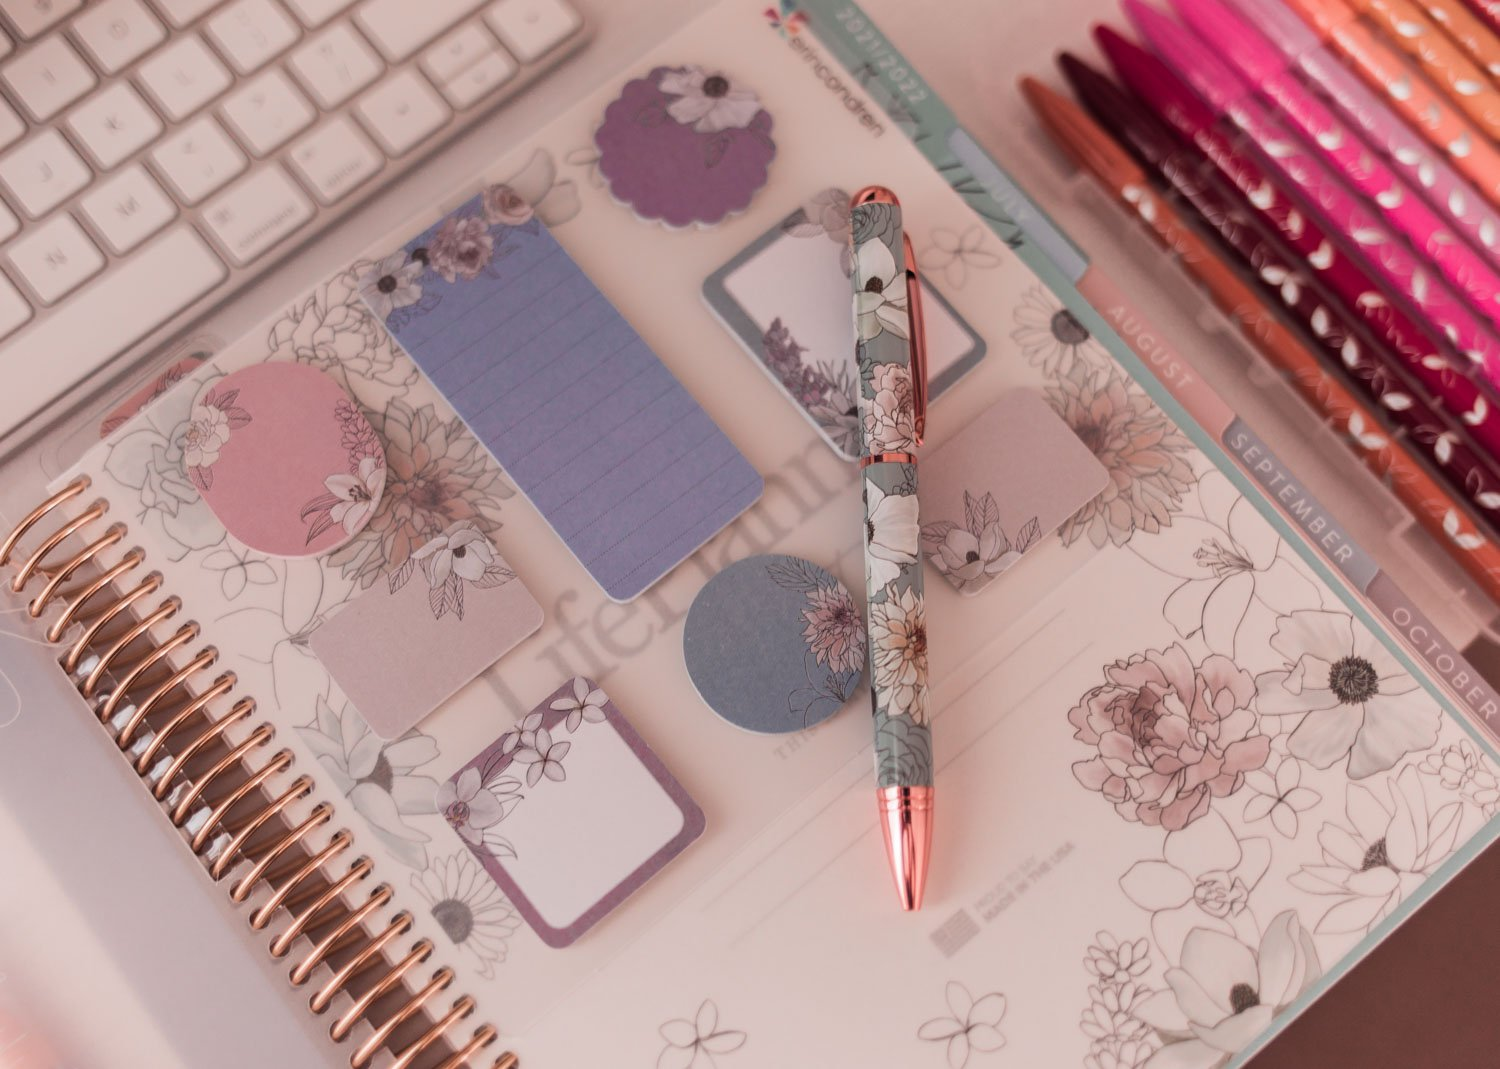 Feminine fashion blogger Elizabeth Hugen shares 3 tips for success when doing a mid-year goal check in along with her favorite Erin Condren LifePlanner and planner accessories